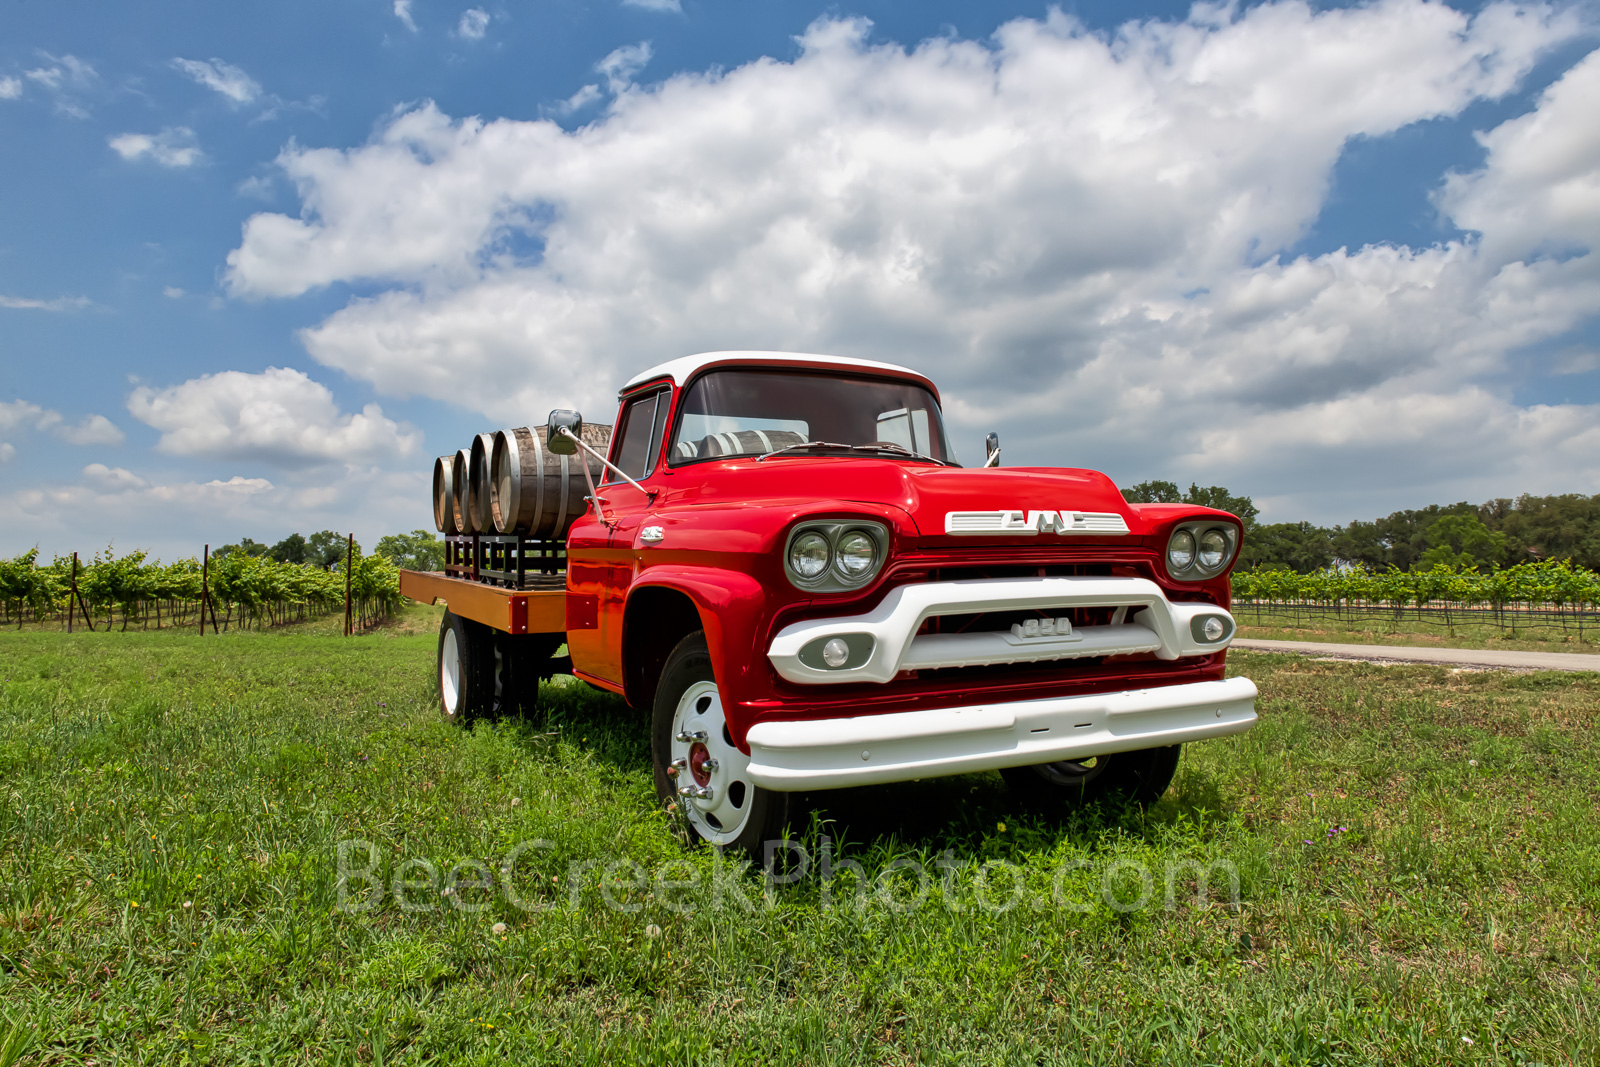 Hill country winery, bright red truck, wine, barrels, grapes, grape vines, clouds, blue sky, texas hill country, truck,, photo